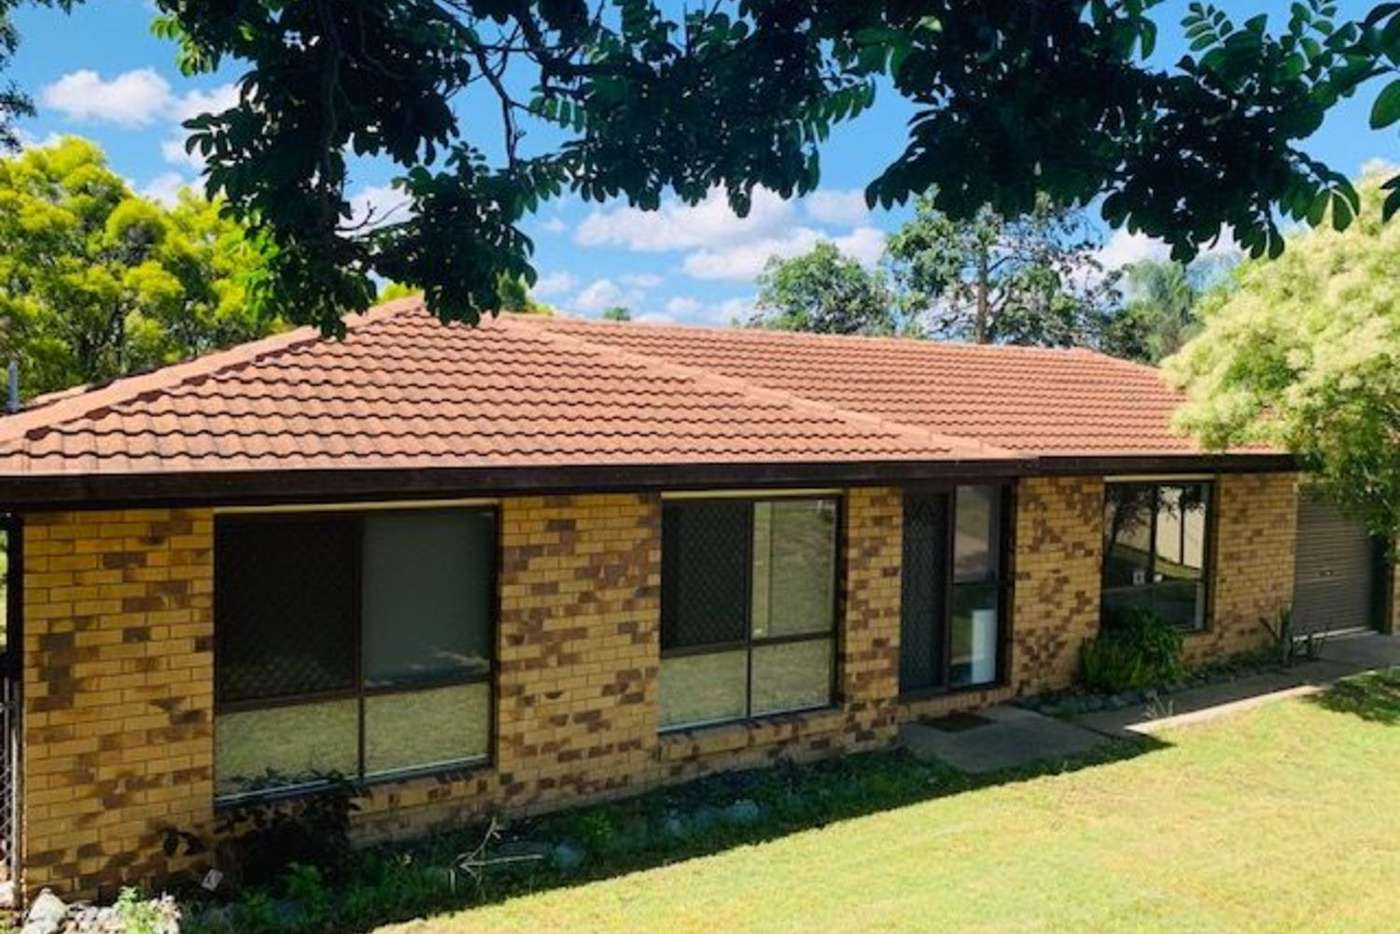 Main view of Homely house listing, 45 Silvertop Street, Hillcrest QLD 4118